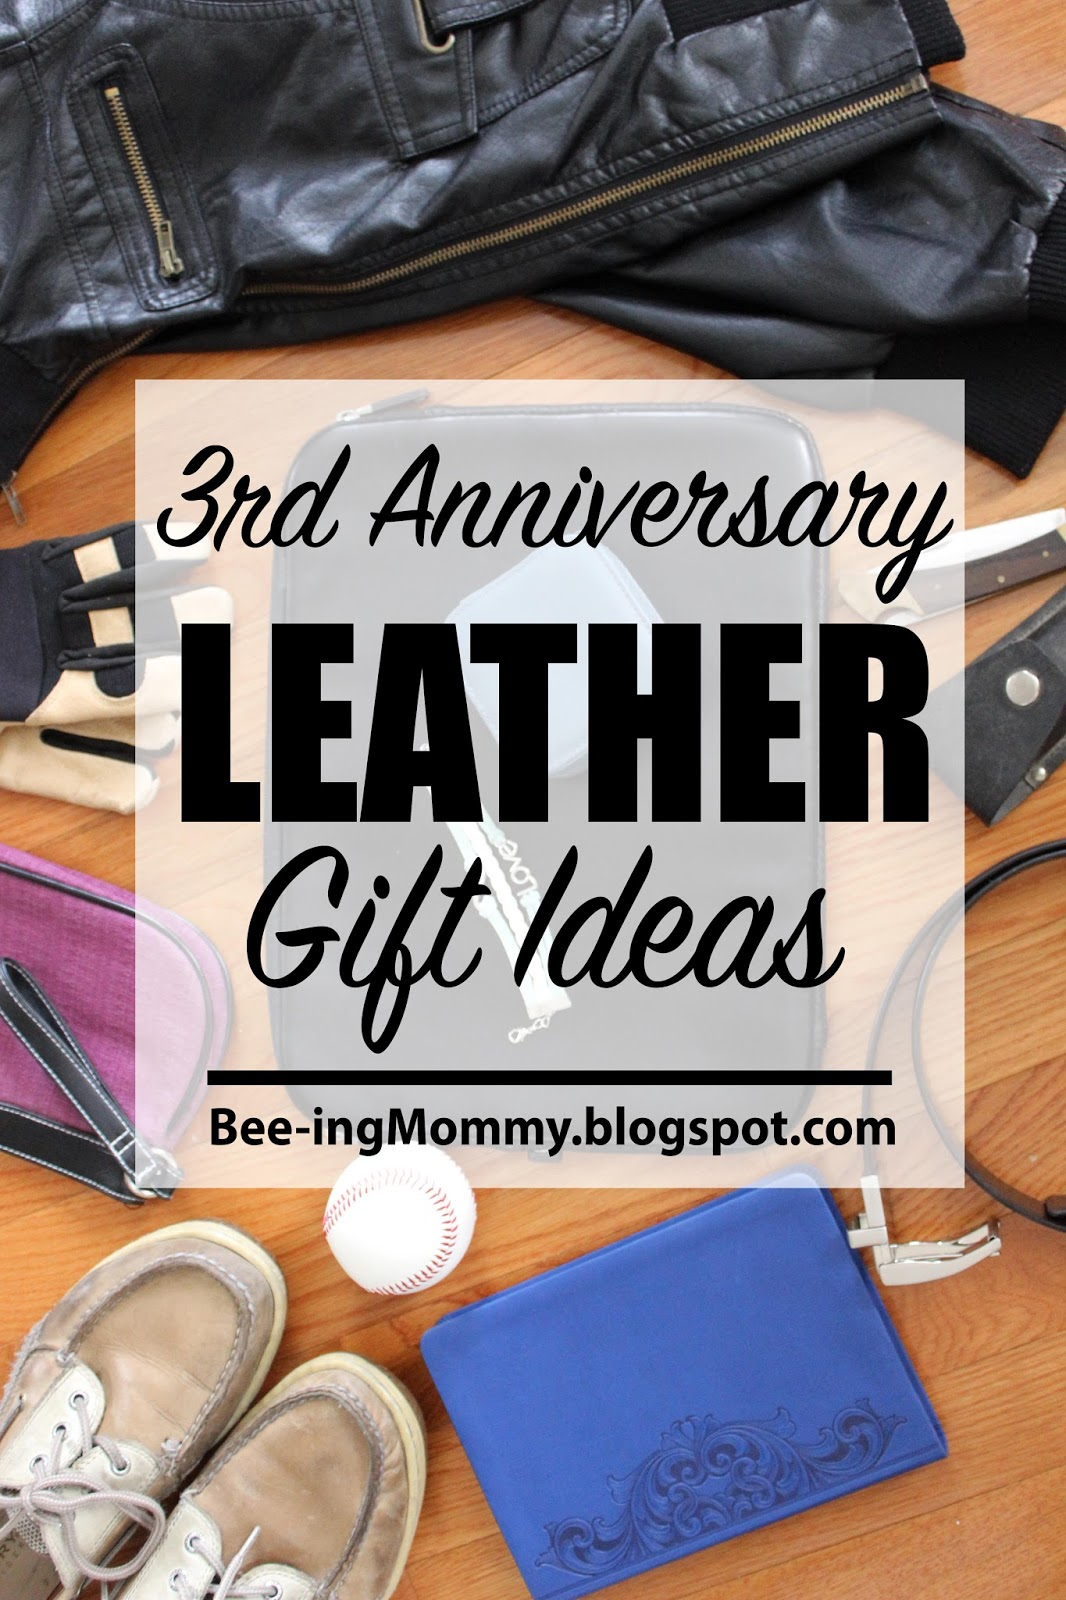 bee-ing mommy blog: third wedding anniversary gift ideas - leather